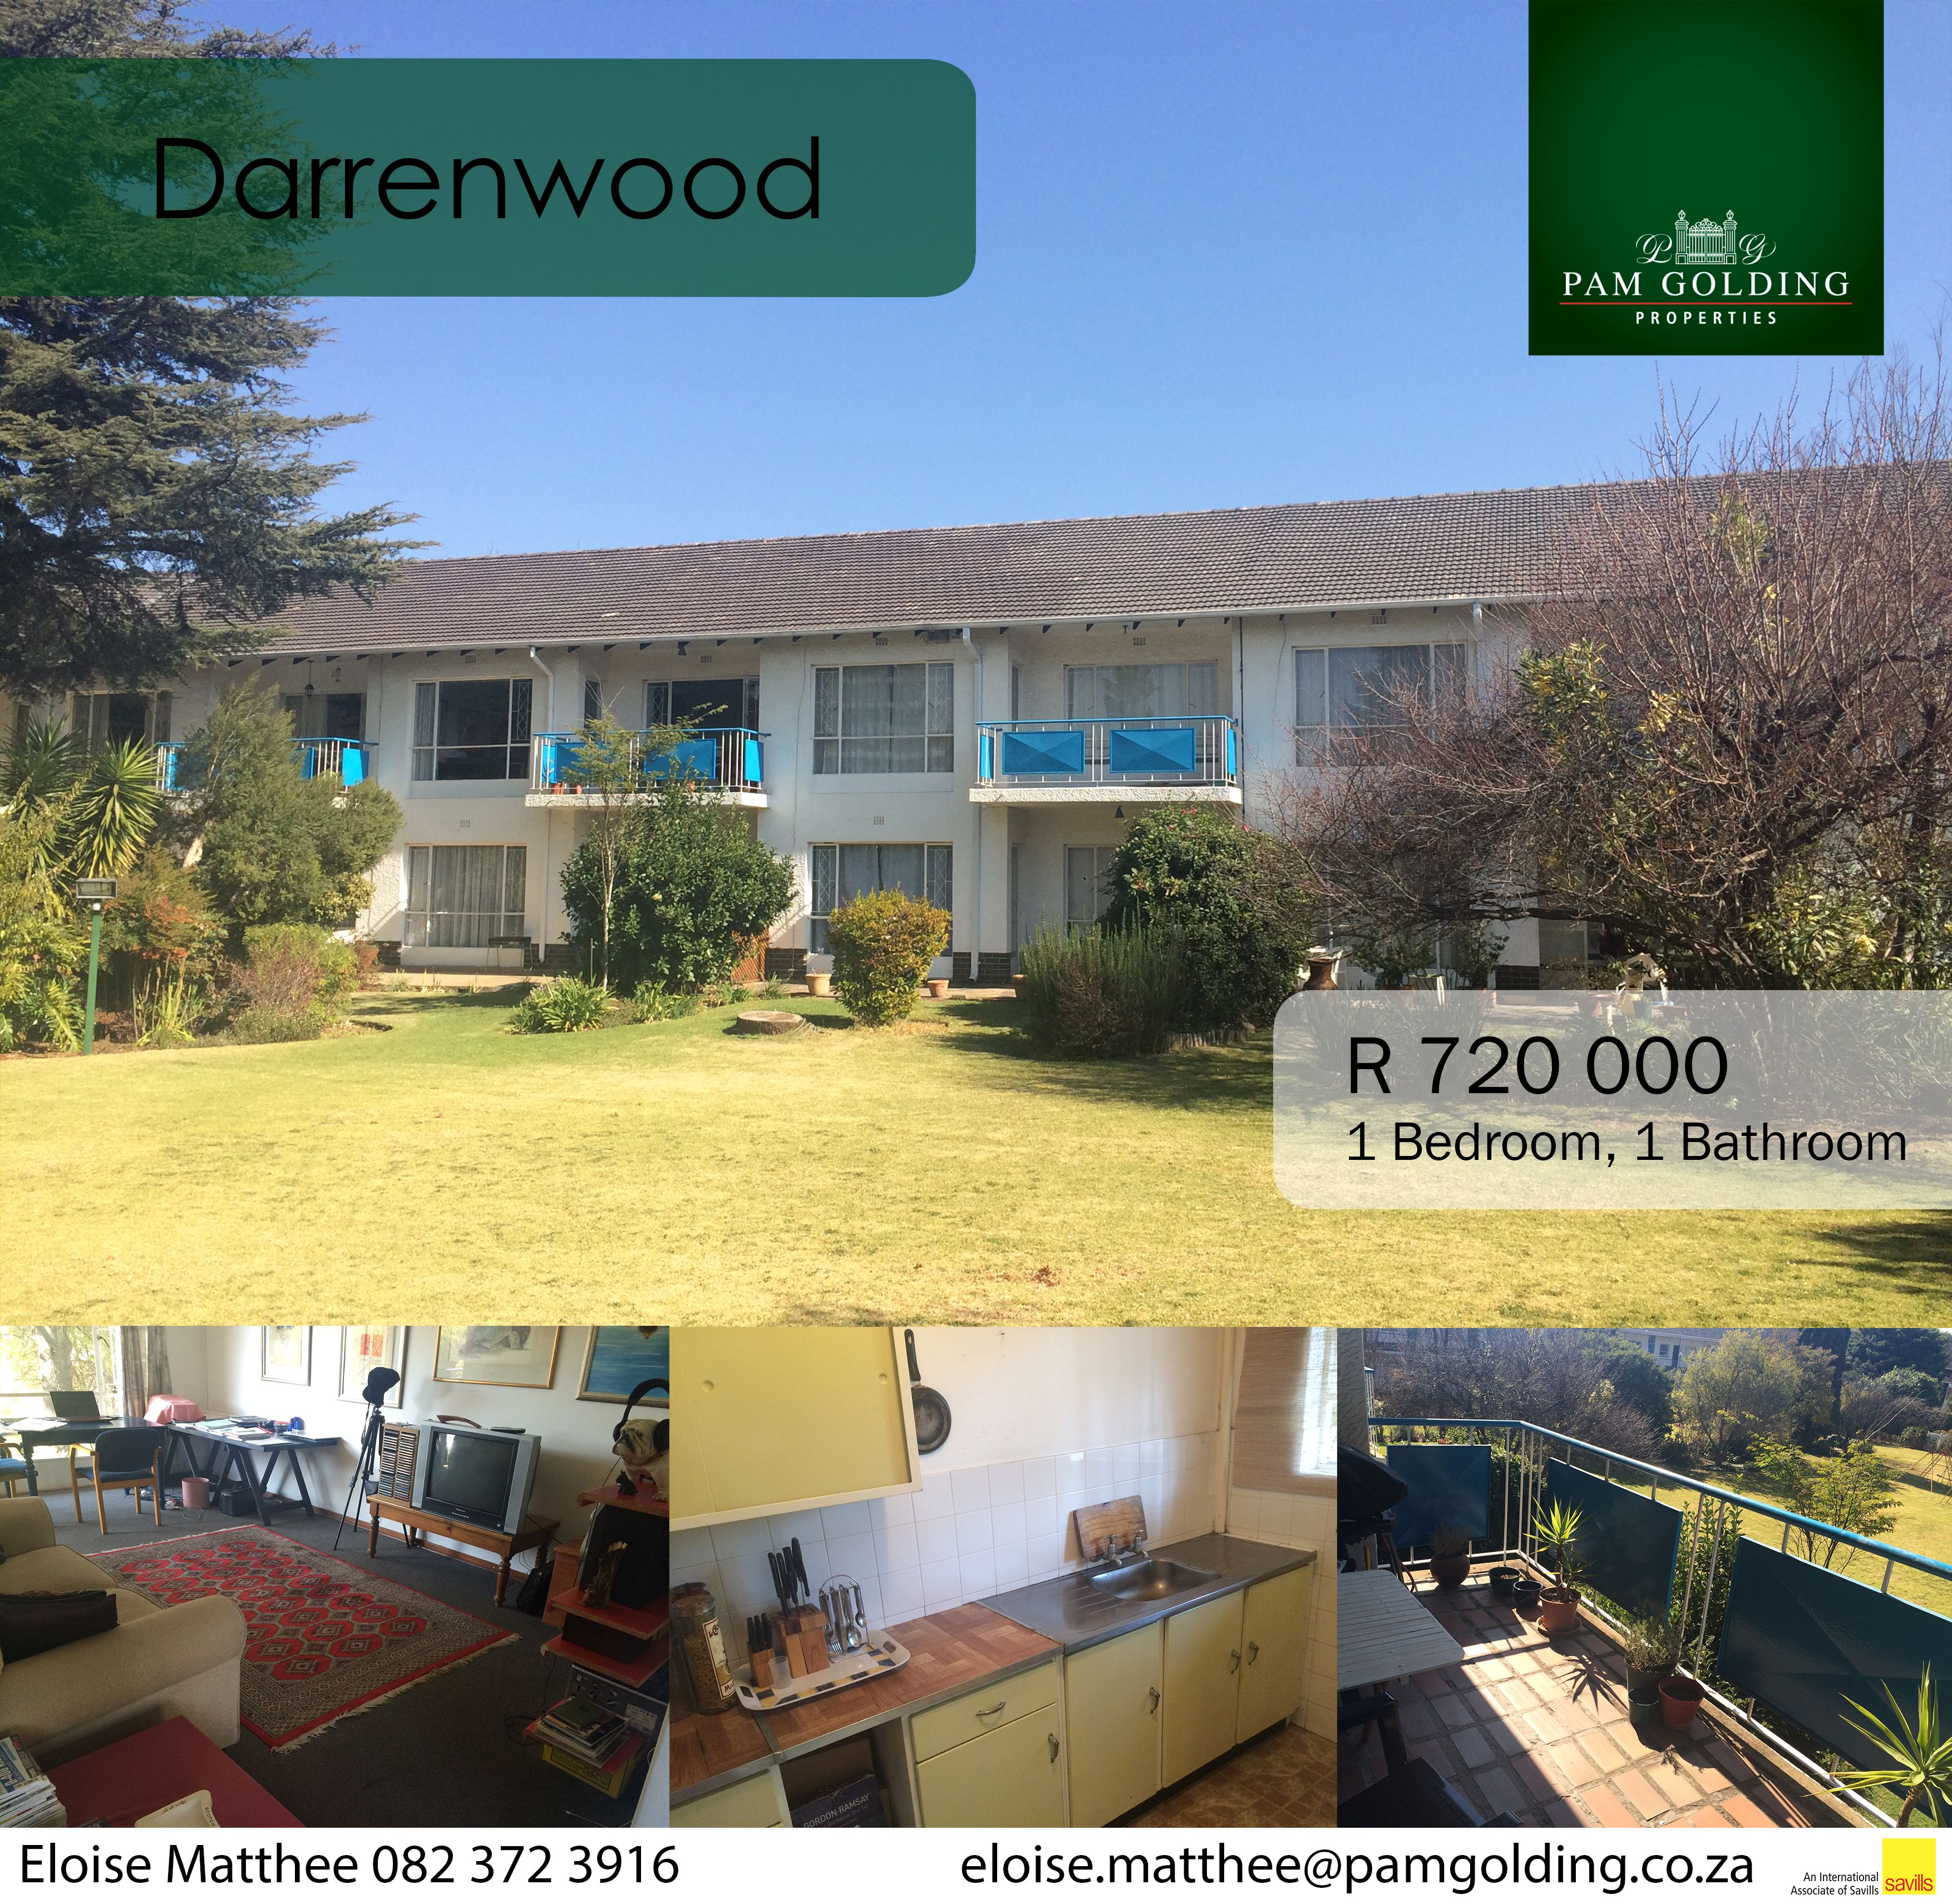 This lovely first floor unit in popular Darrenwood Heights